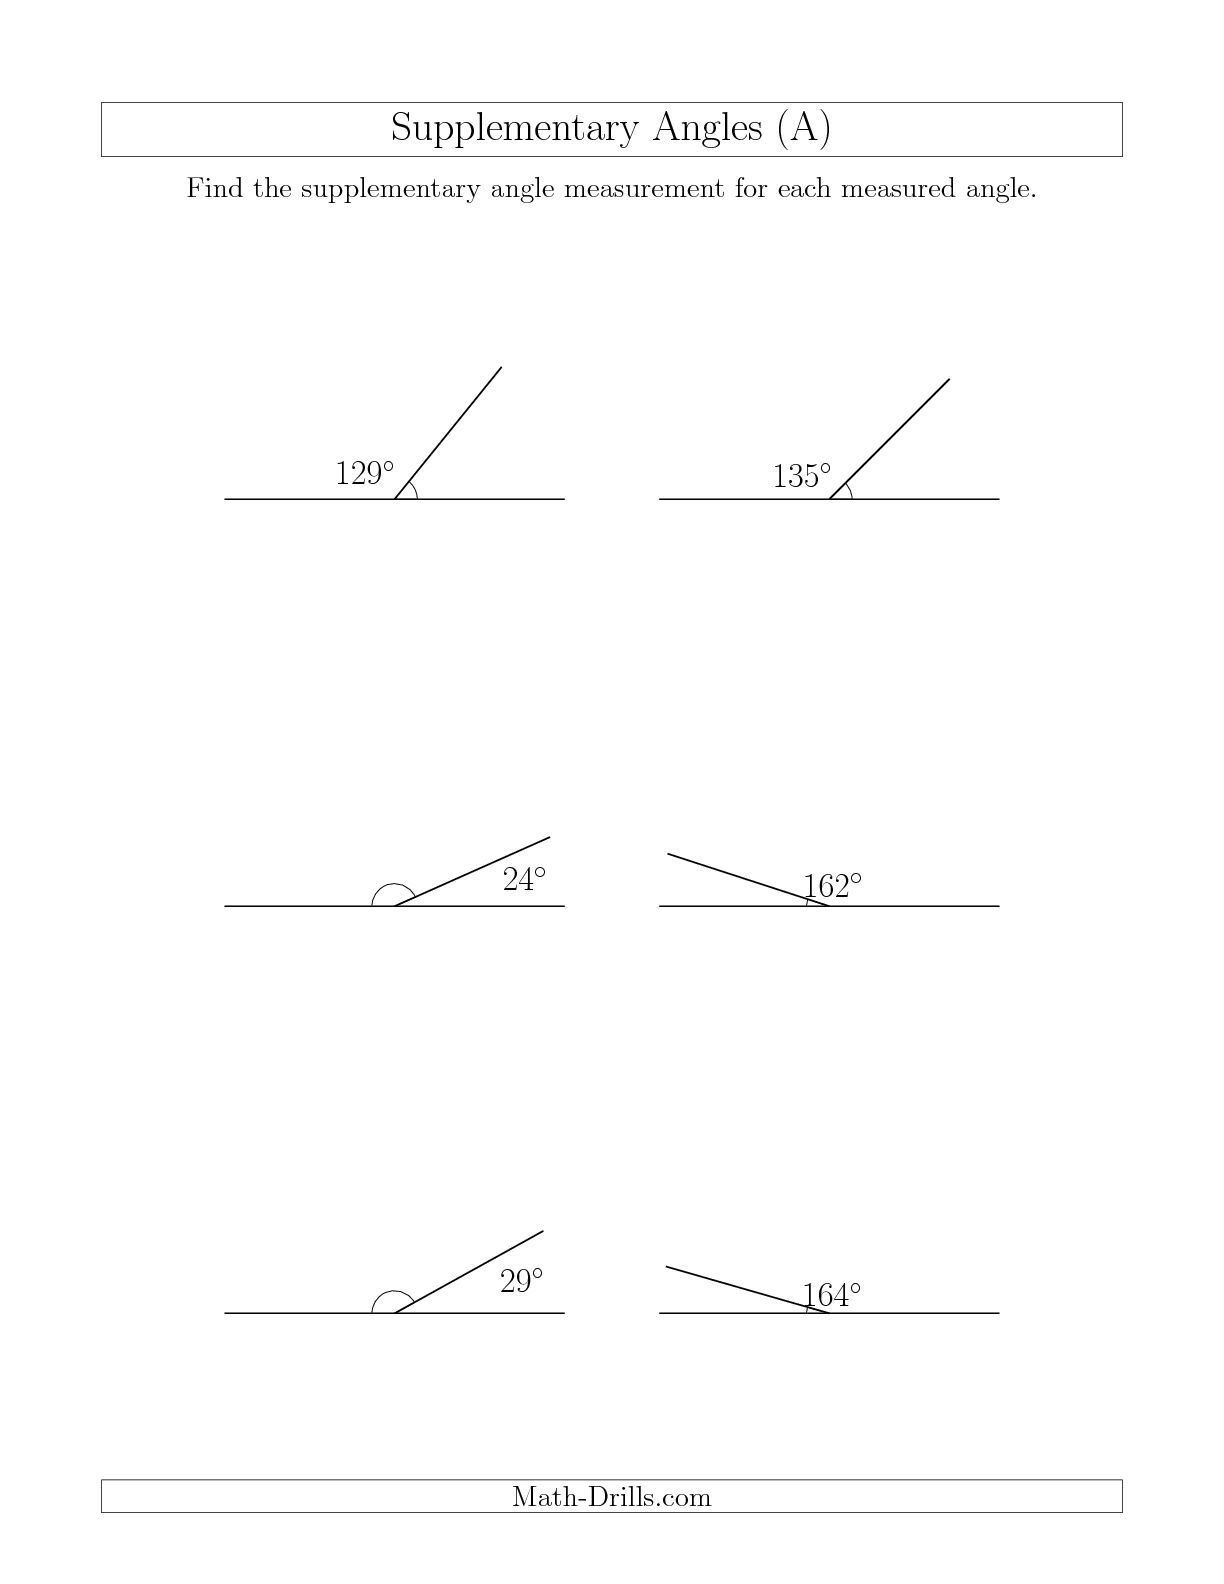 Worksheets Worksheets About Angle Relations In Grade 5 the supplementary angle relationships a math worksheet from geometry worksheets page at math